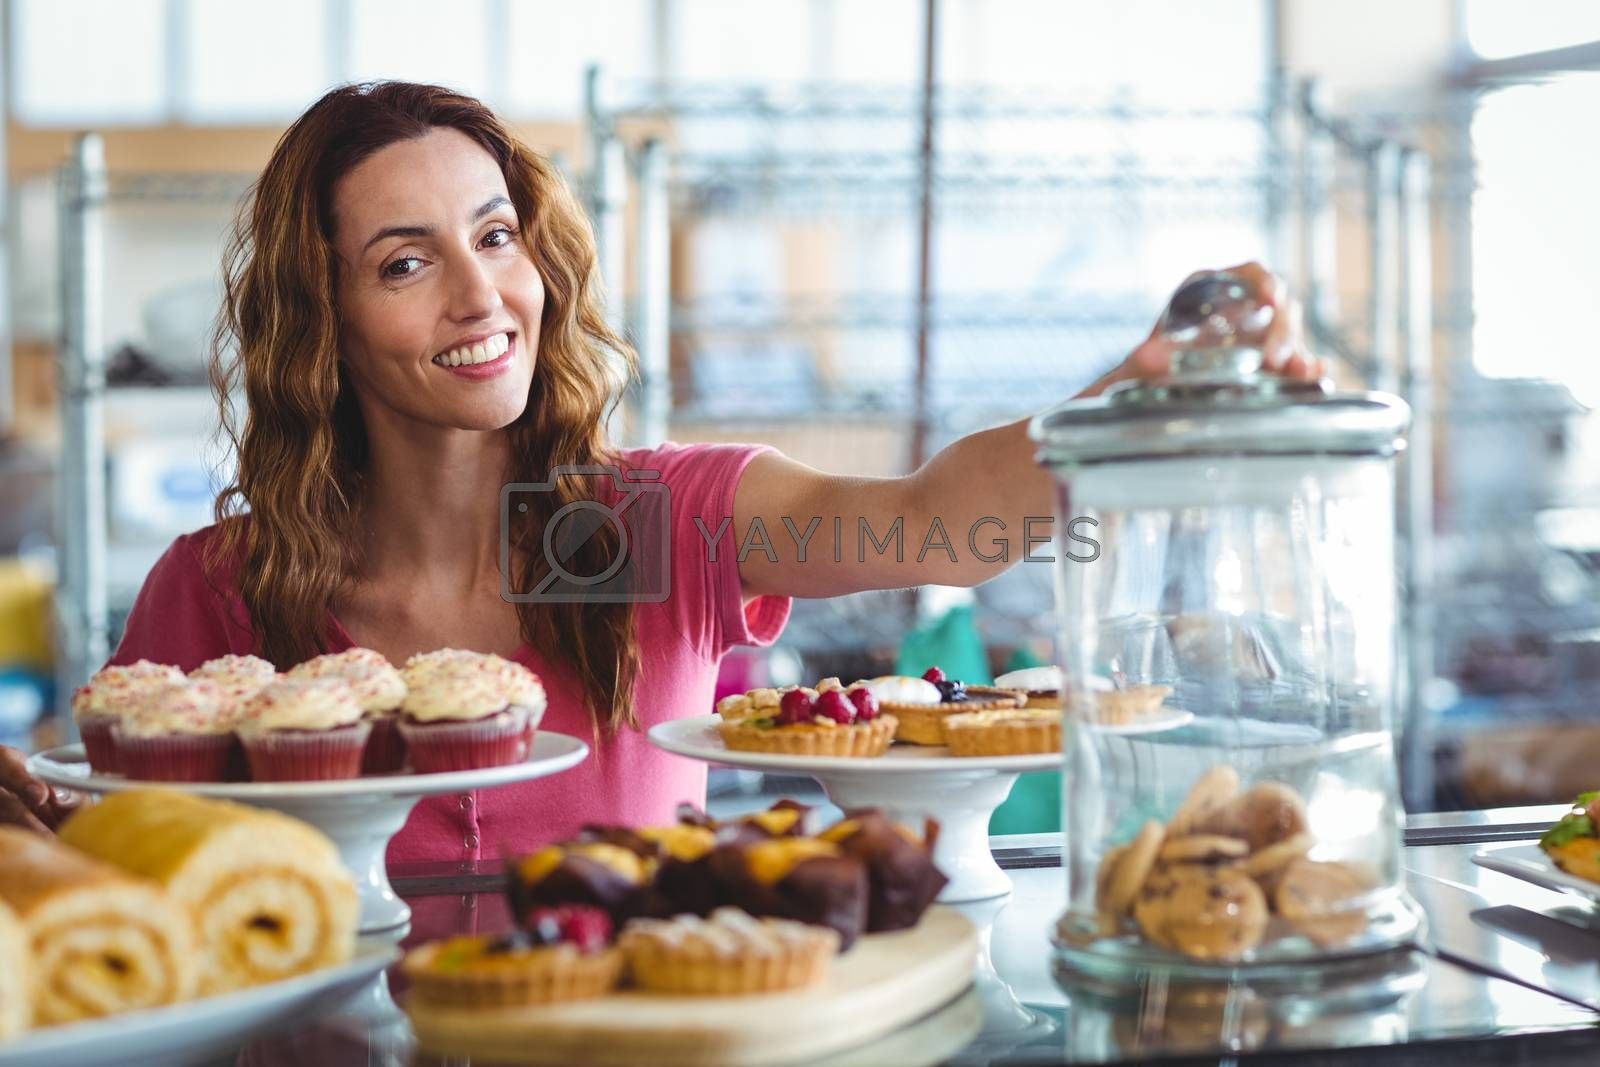 Royalty free image of Pretty brunette smiling at camera behind plates of pastries by Wavebreakmedia